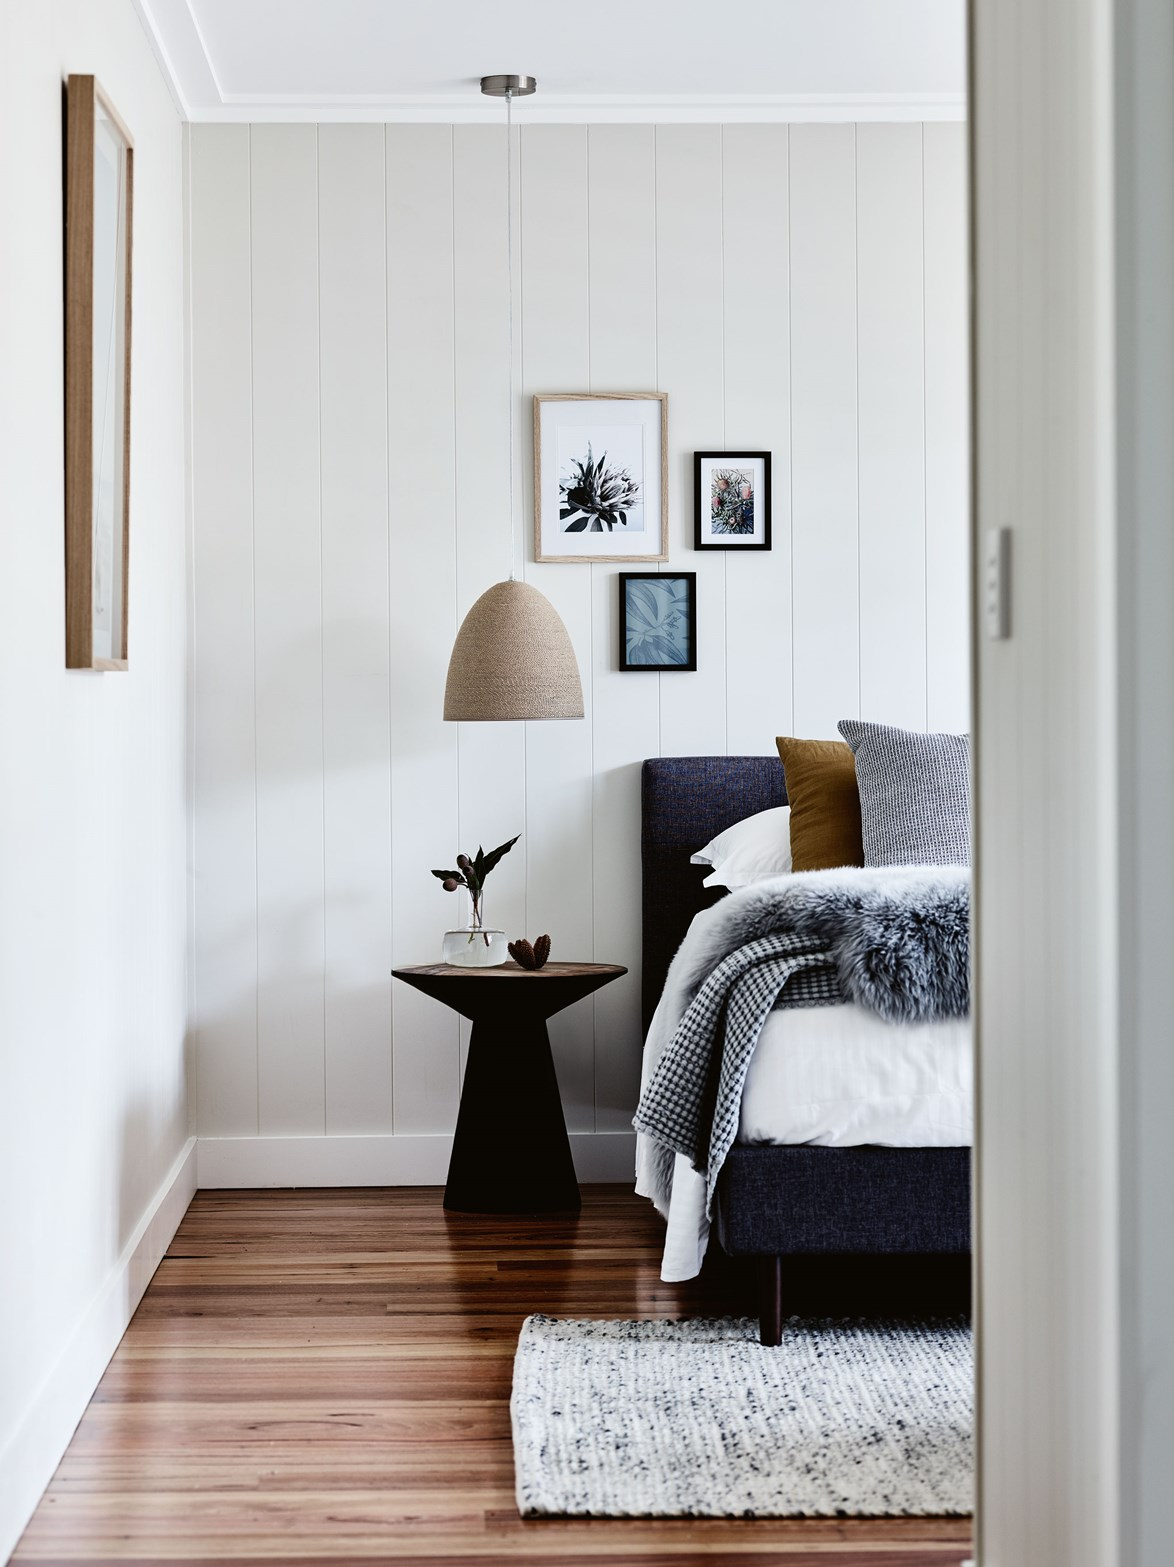 No one wants to step out of a warm bed onto a cold floor first thing in the morning. If you have floorboards in your bedroom, a rug beside or at the end of the bed will help to cosy up the space in winter.